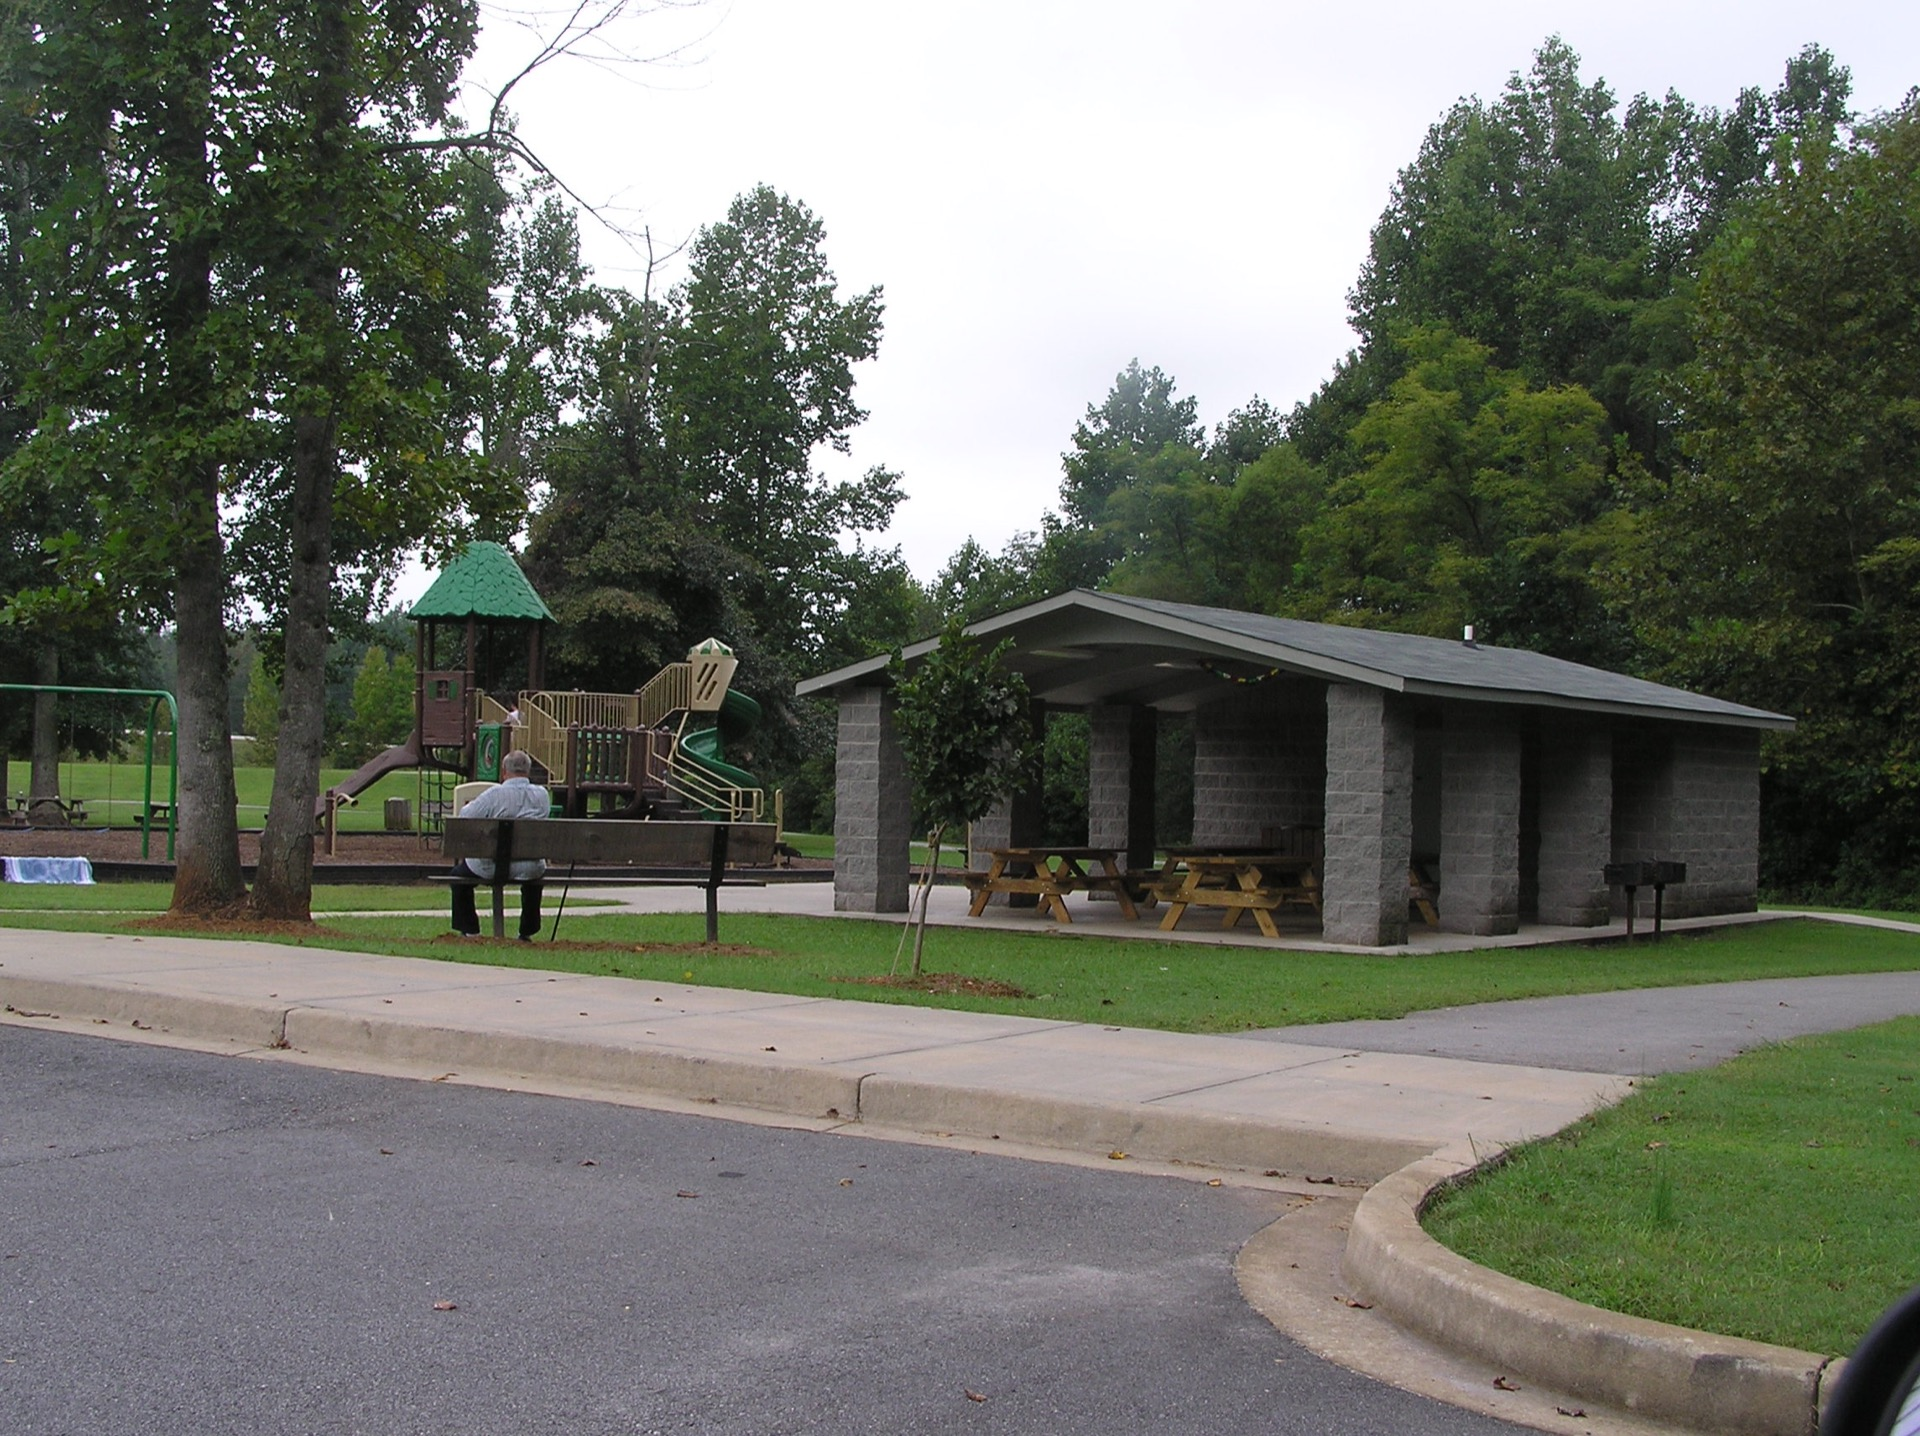 Poinsett Park shelter and playground